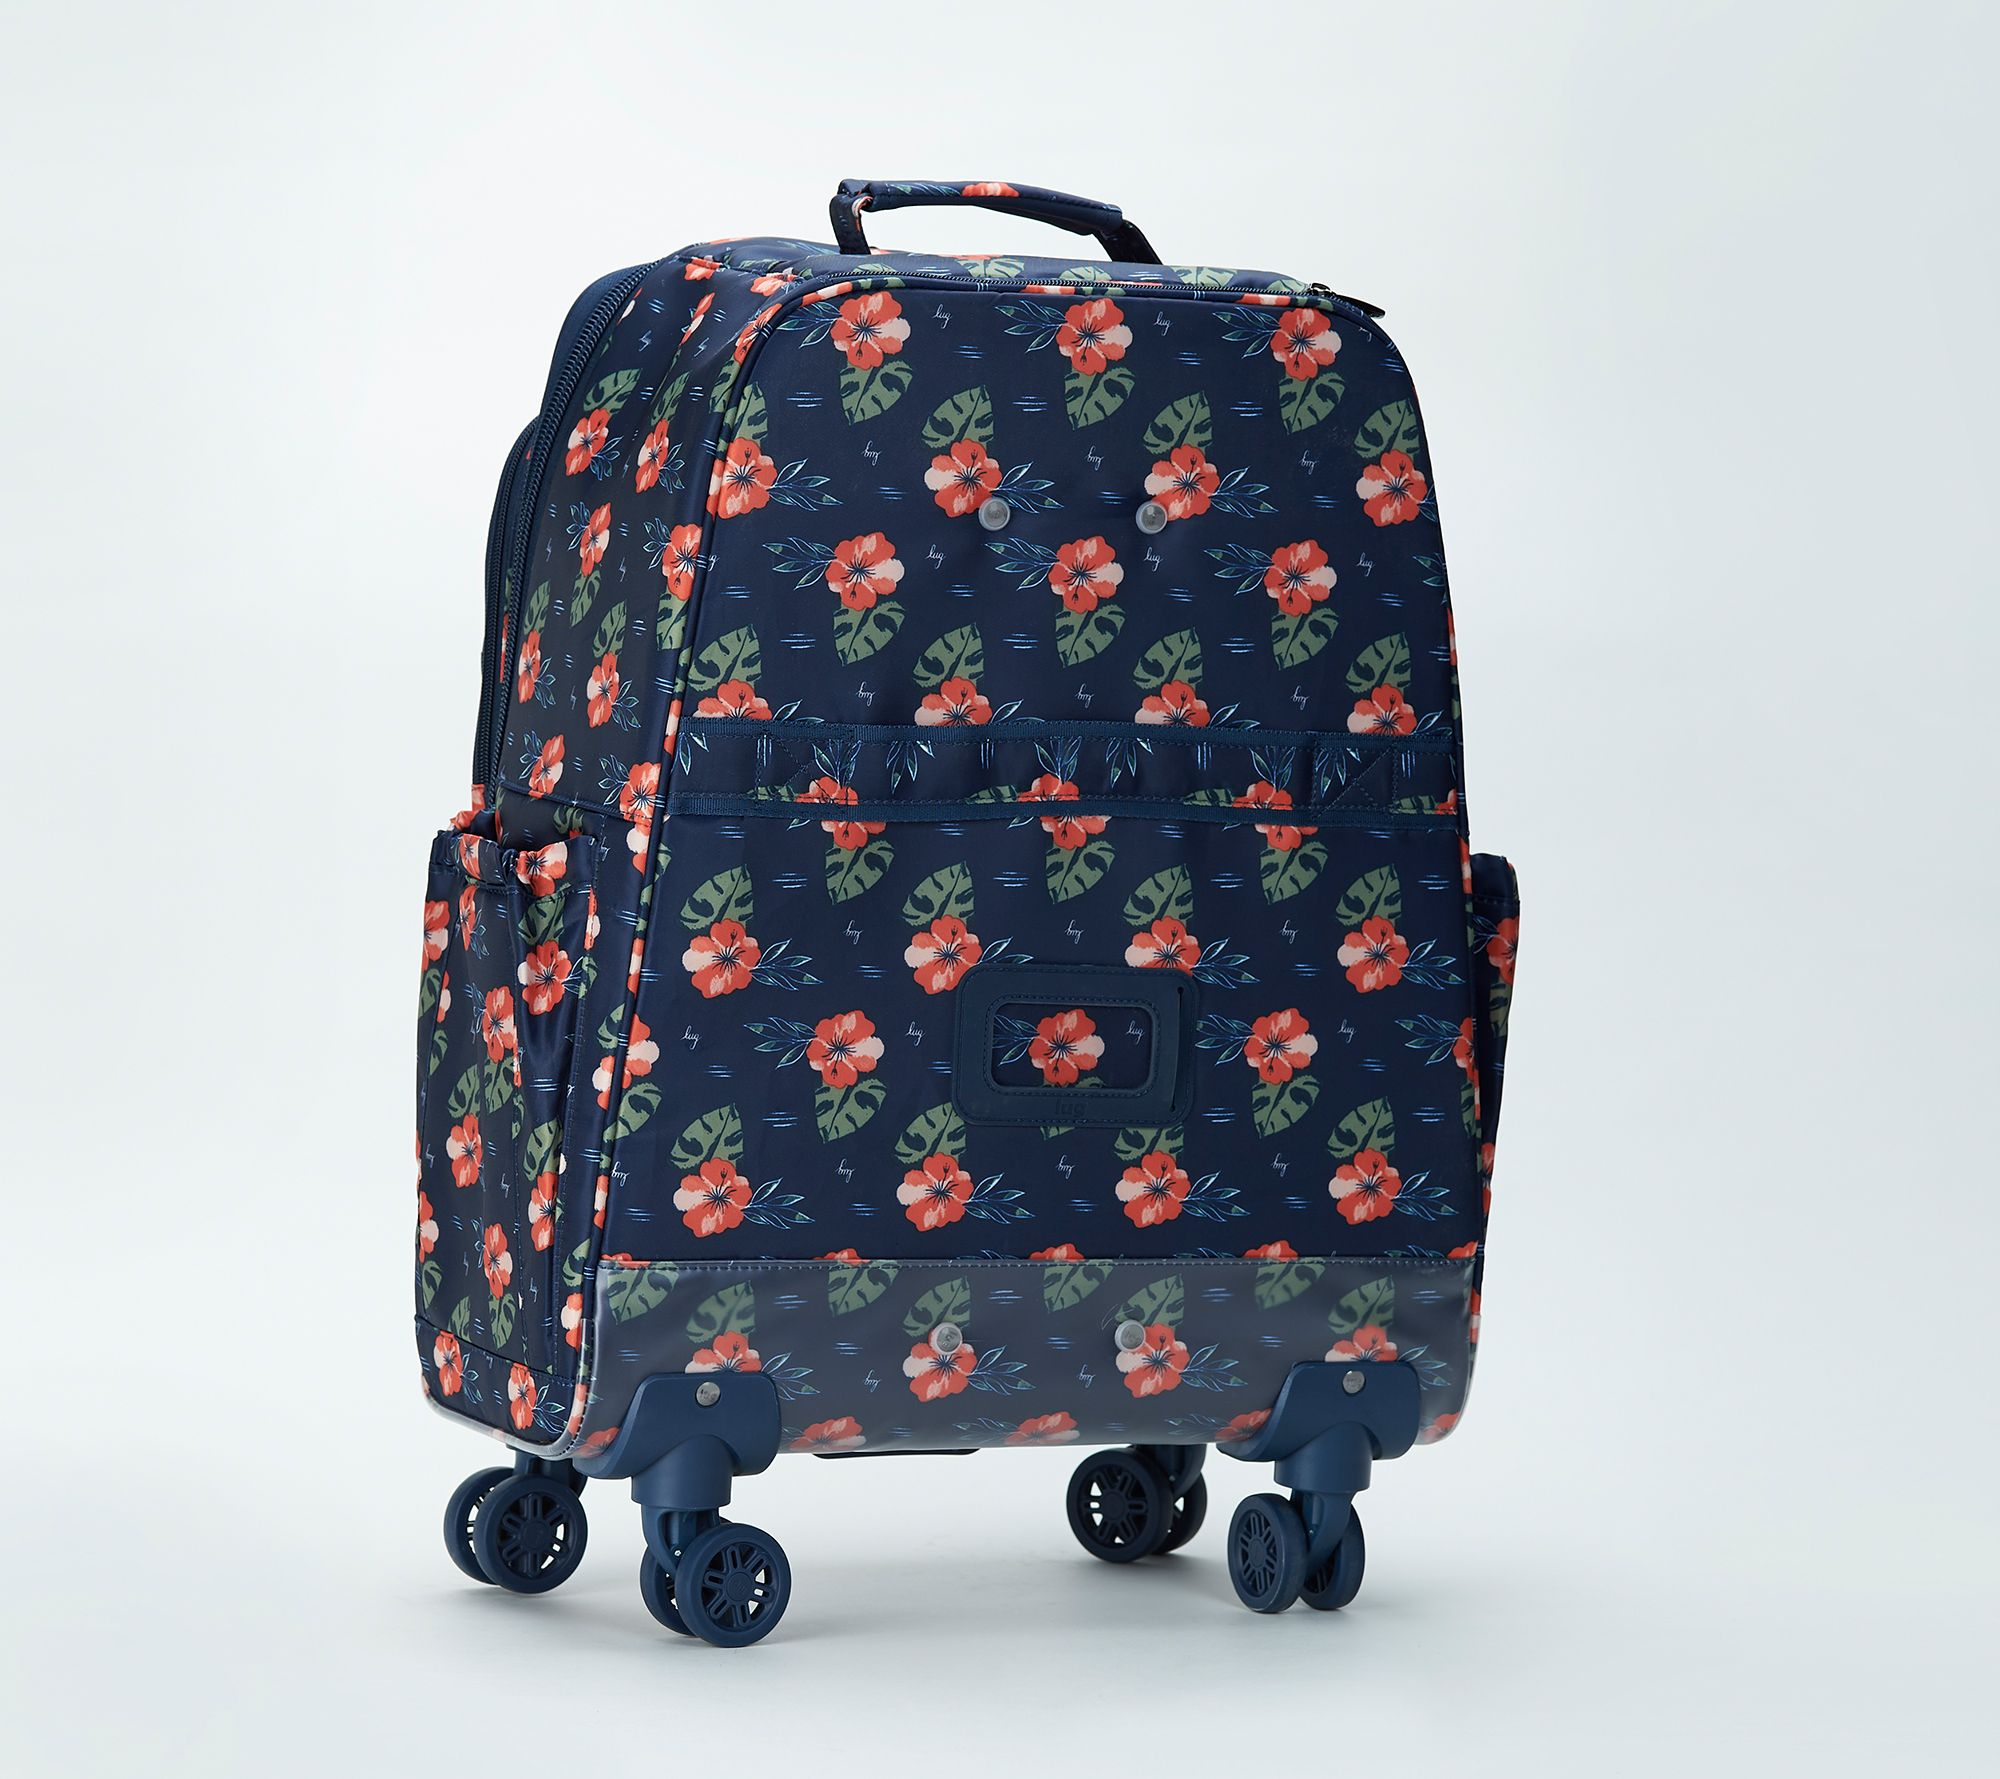 Lug Travel Roller Bag - Puddle Jumper Wheelie 2 - Page 1 — QVC.com 2752d1c55ddf0